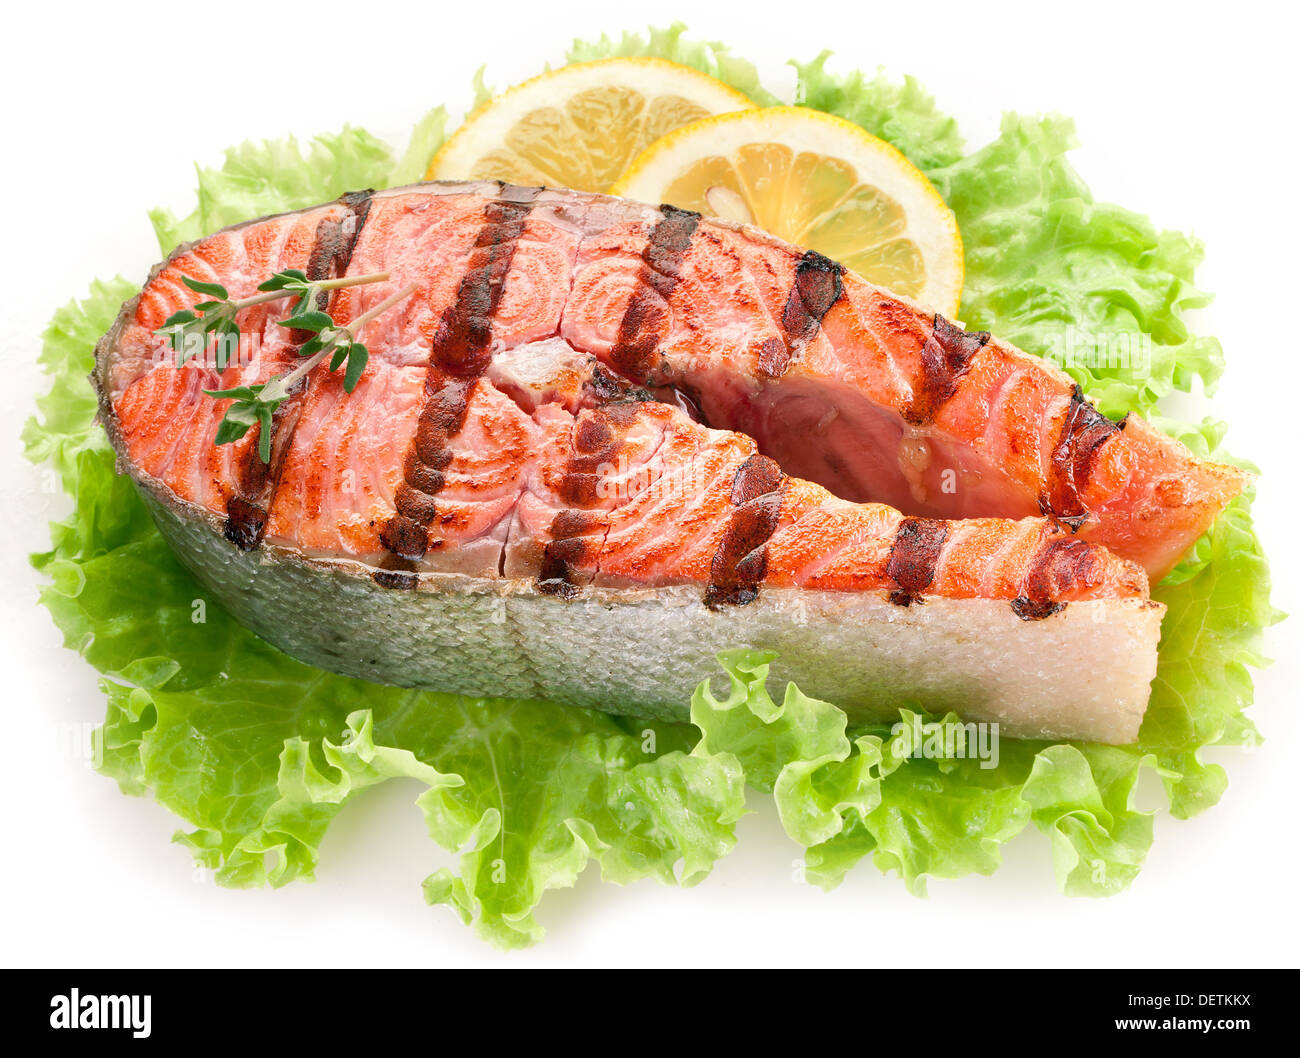 Grilled salmon and with lemon slices overr lettuce leaves. Close up shot. - Stock Image